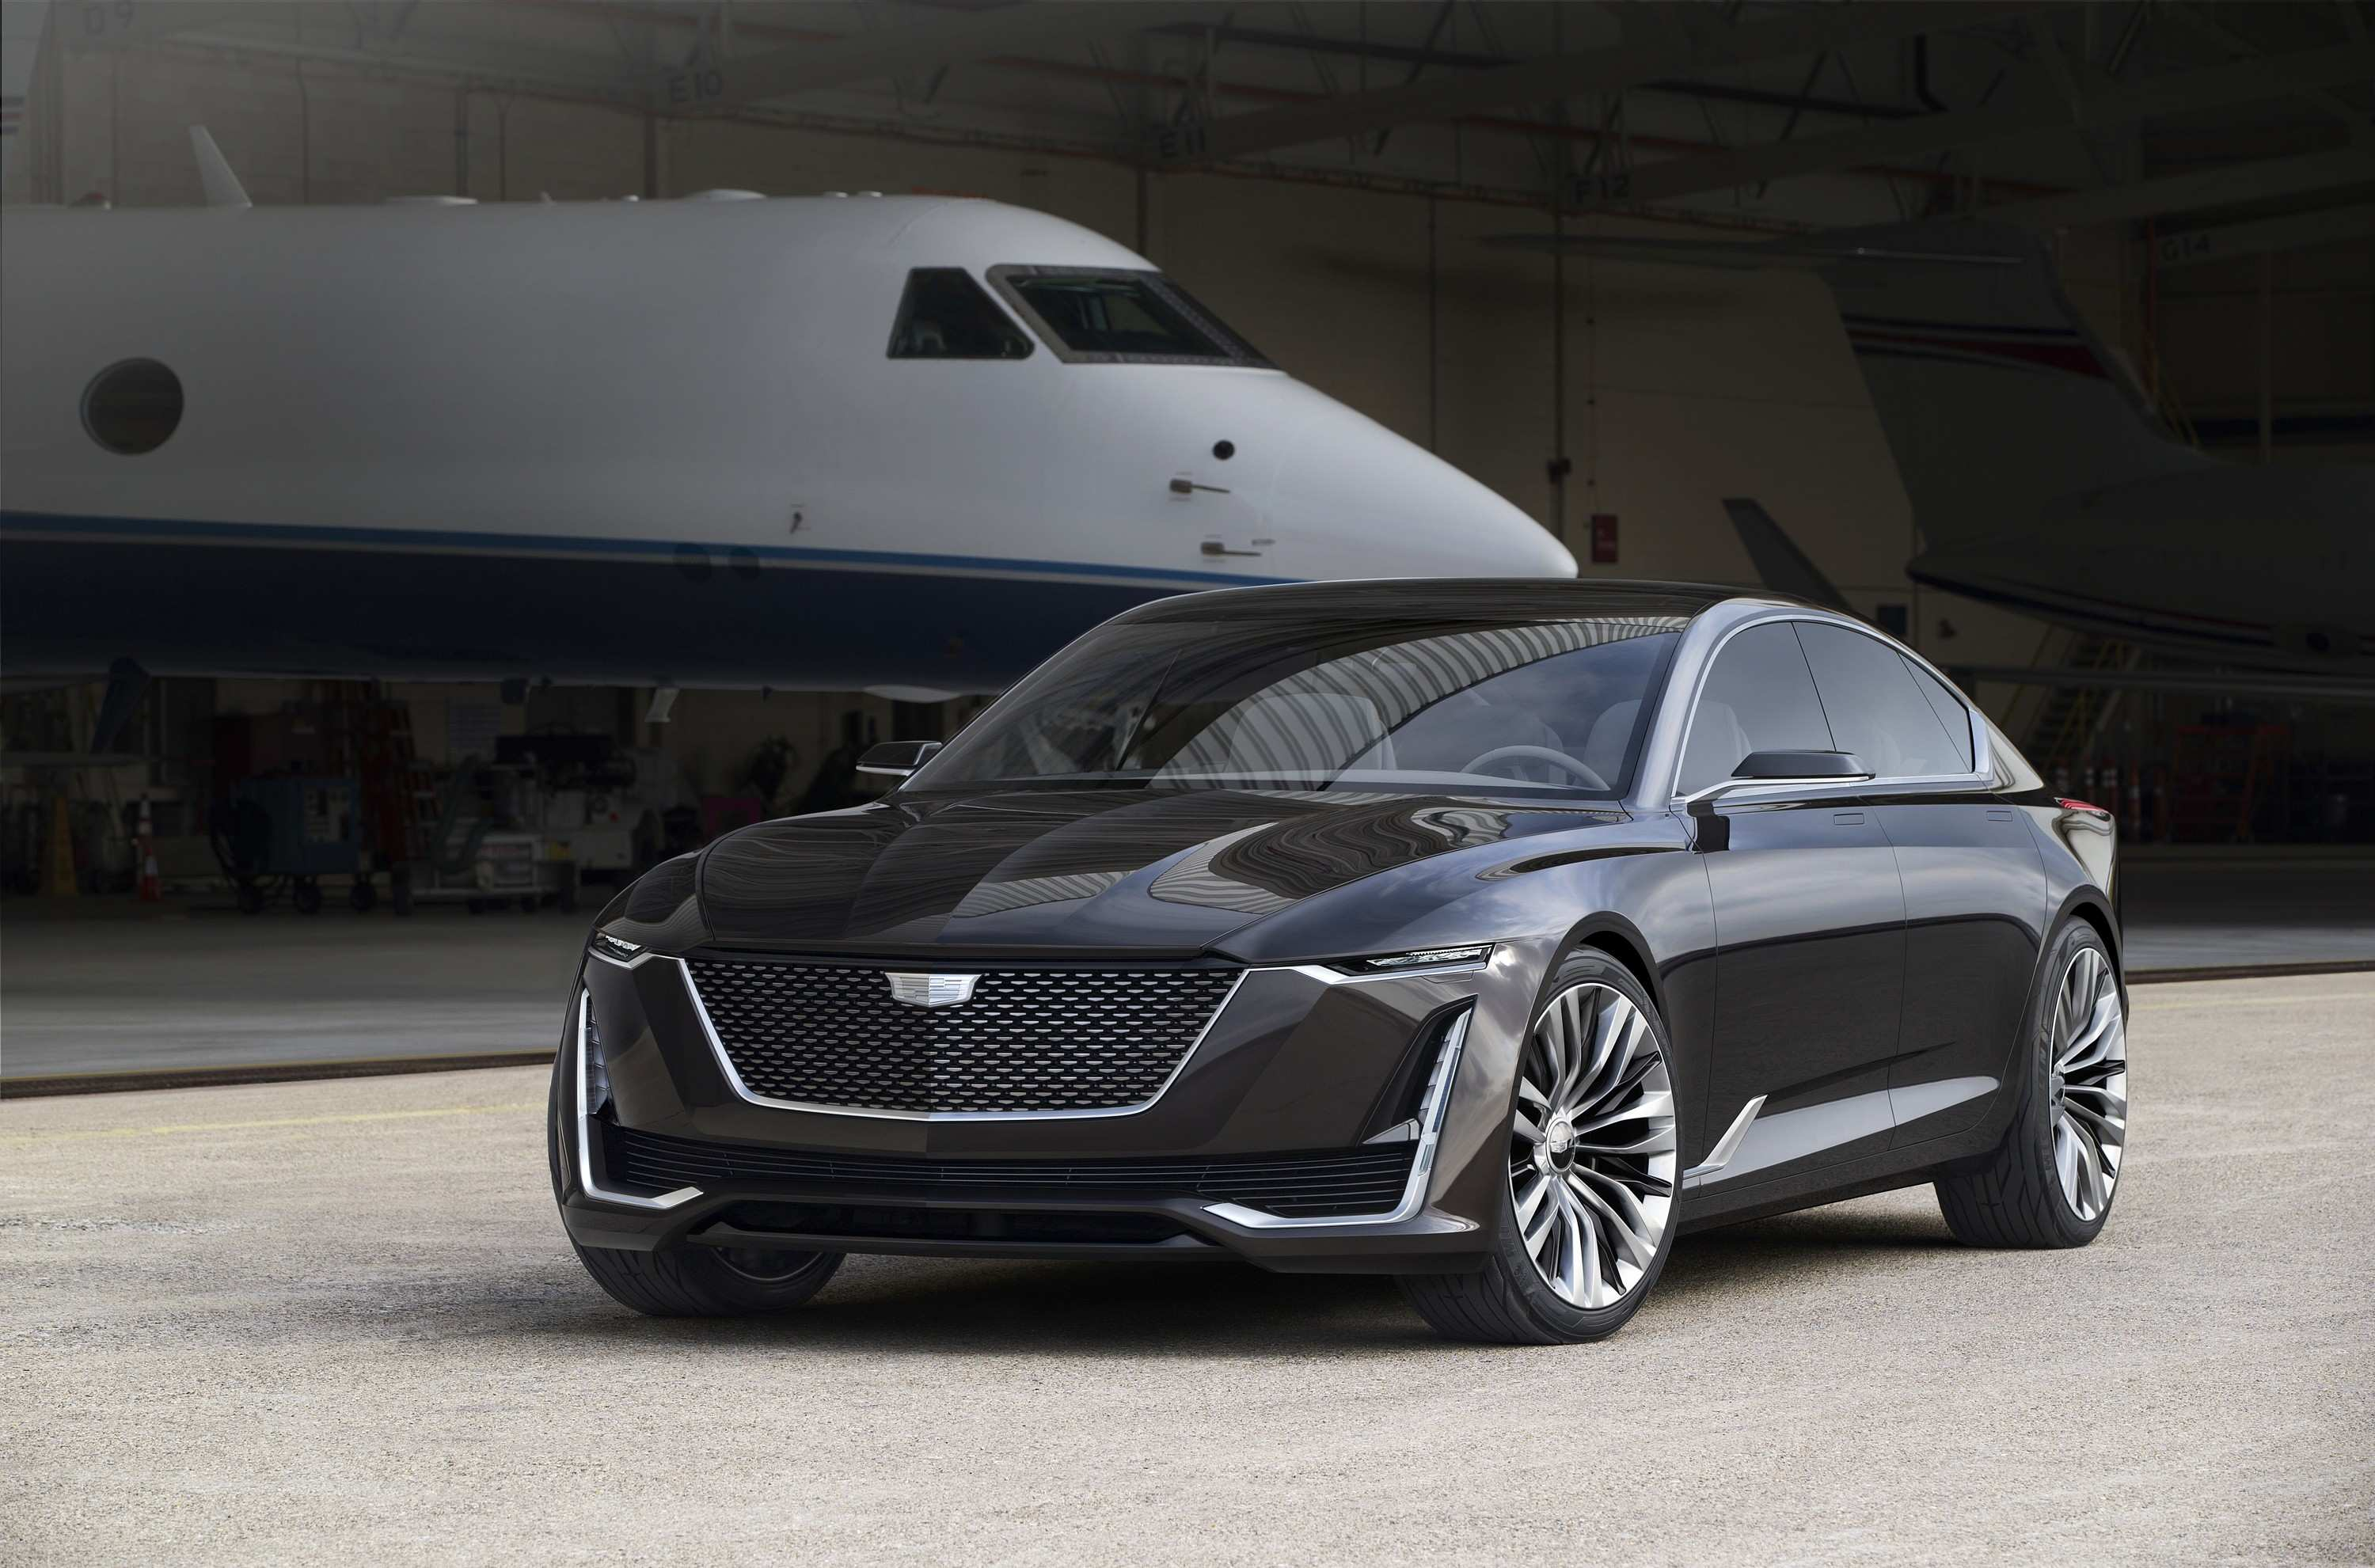 92 Concept of Cadillac Cts V 2020 Review for Cadillac Cts V 2020